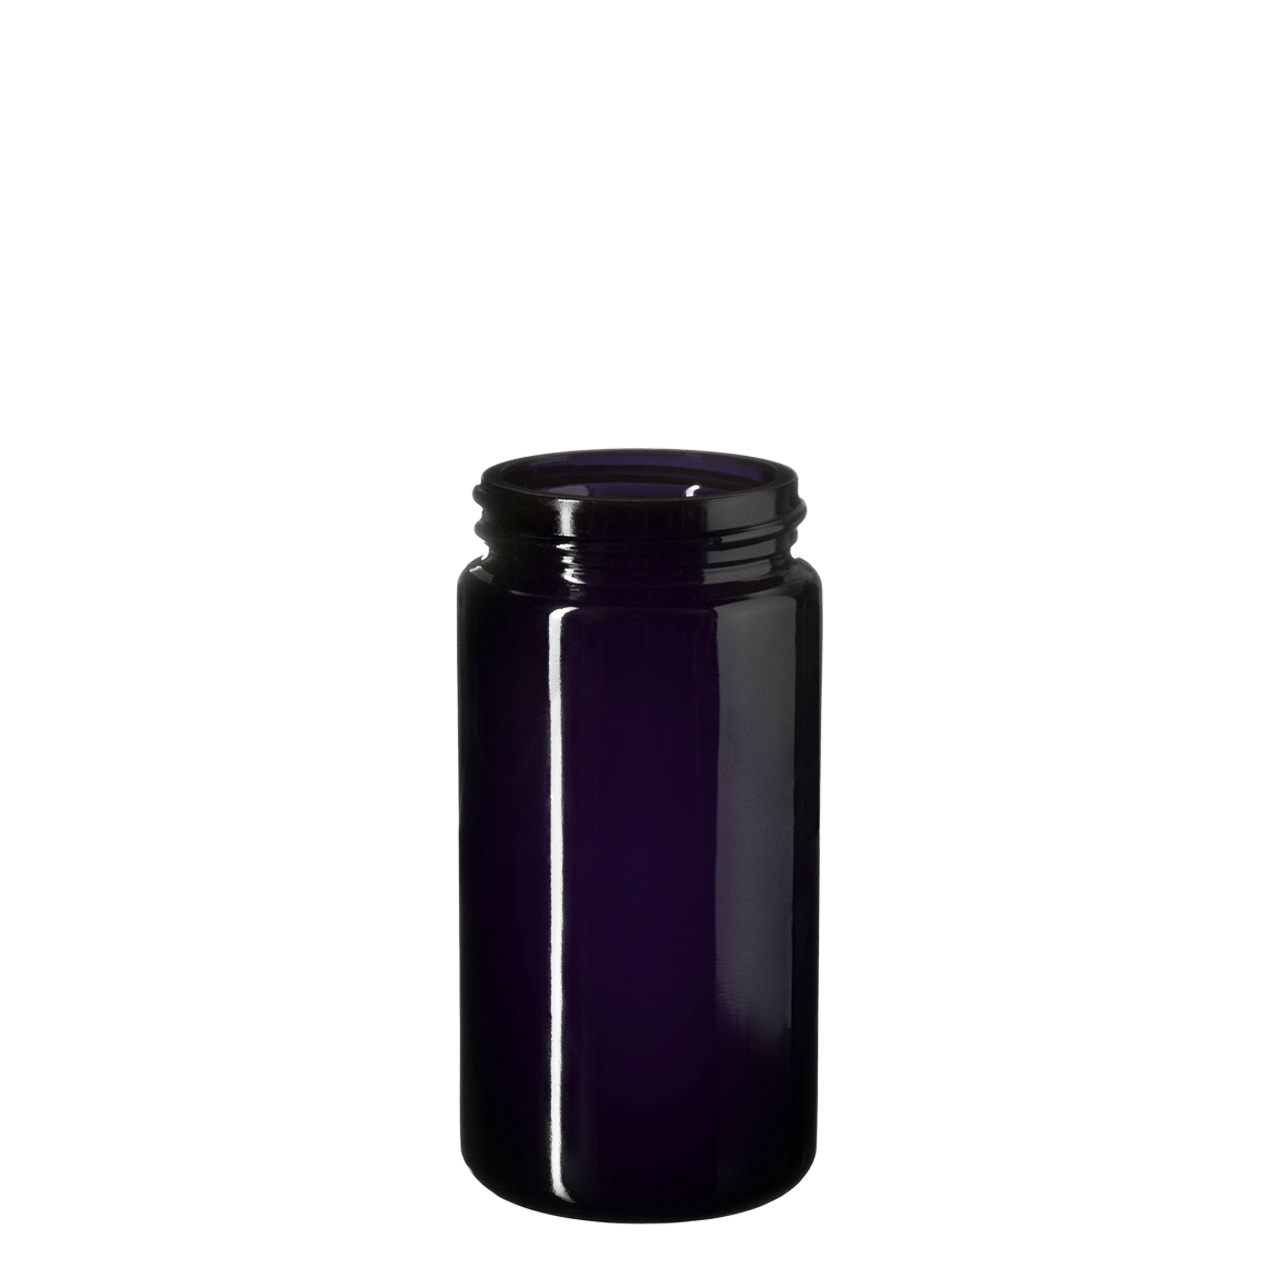 Wide neck jar Saturn 100 ml, Miron, 45/400 thread